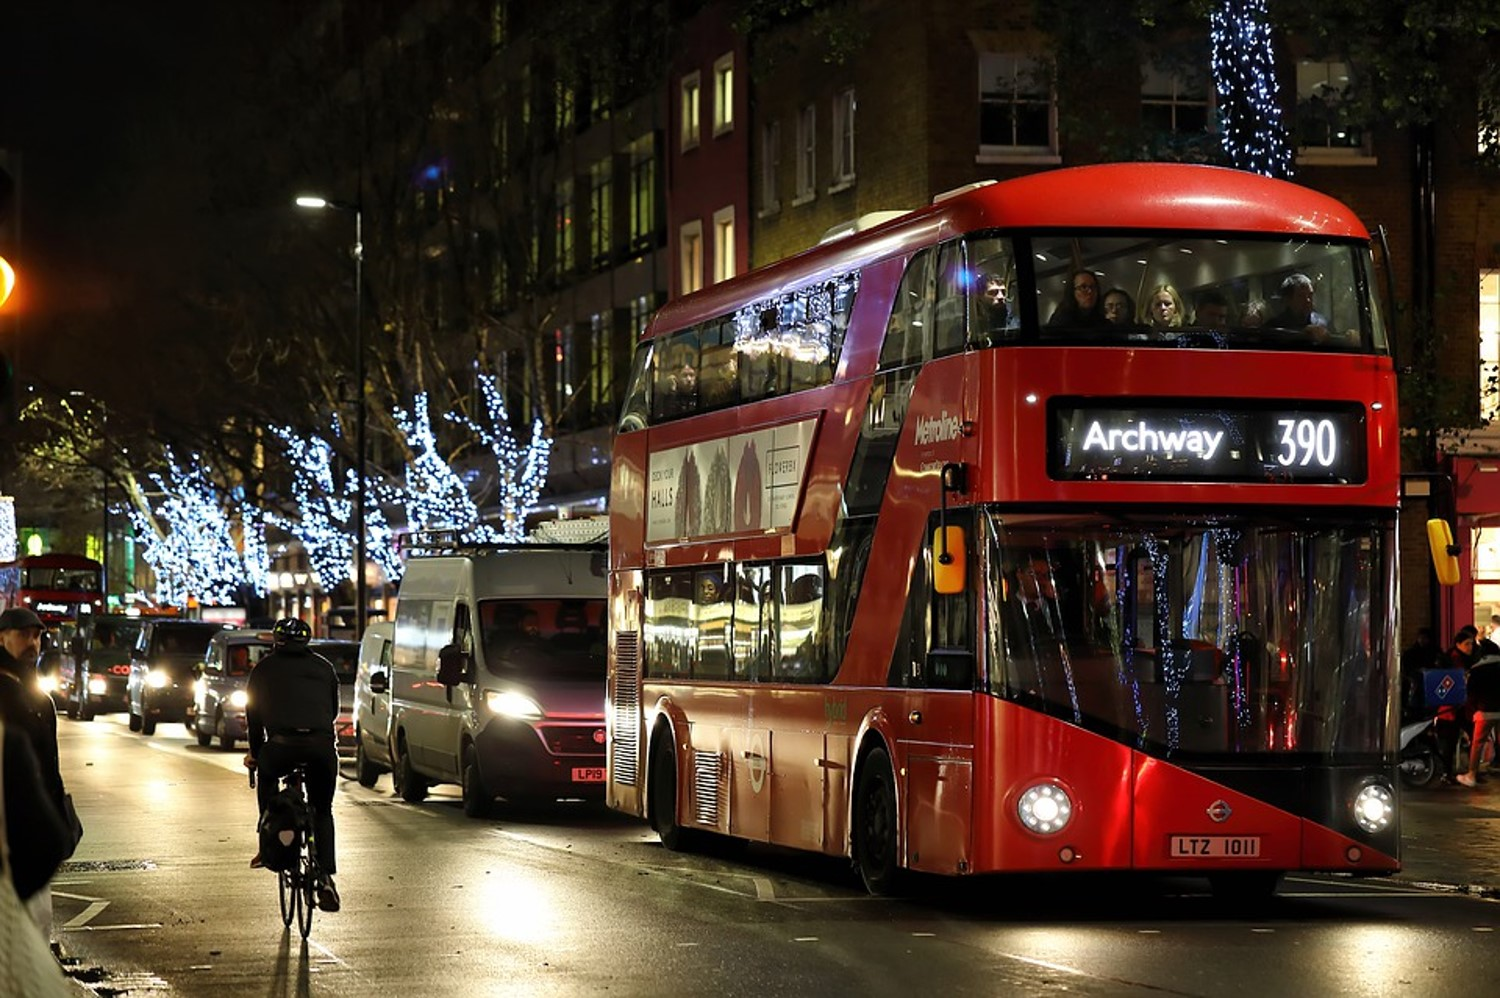 A Londoner's guide: to Christmas